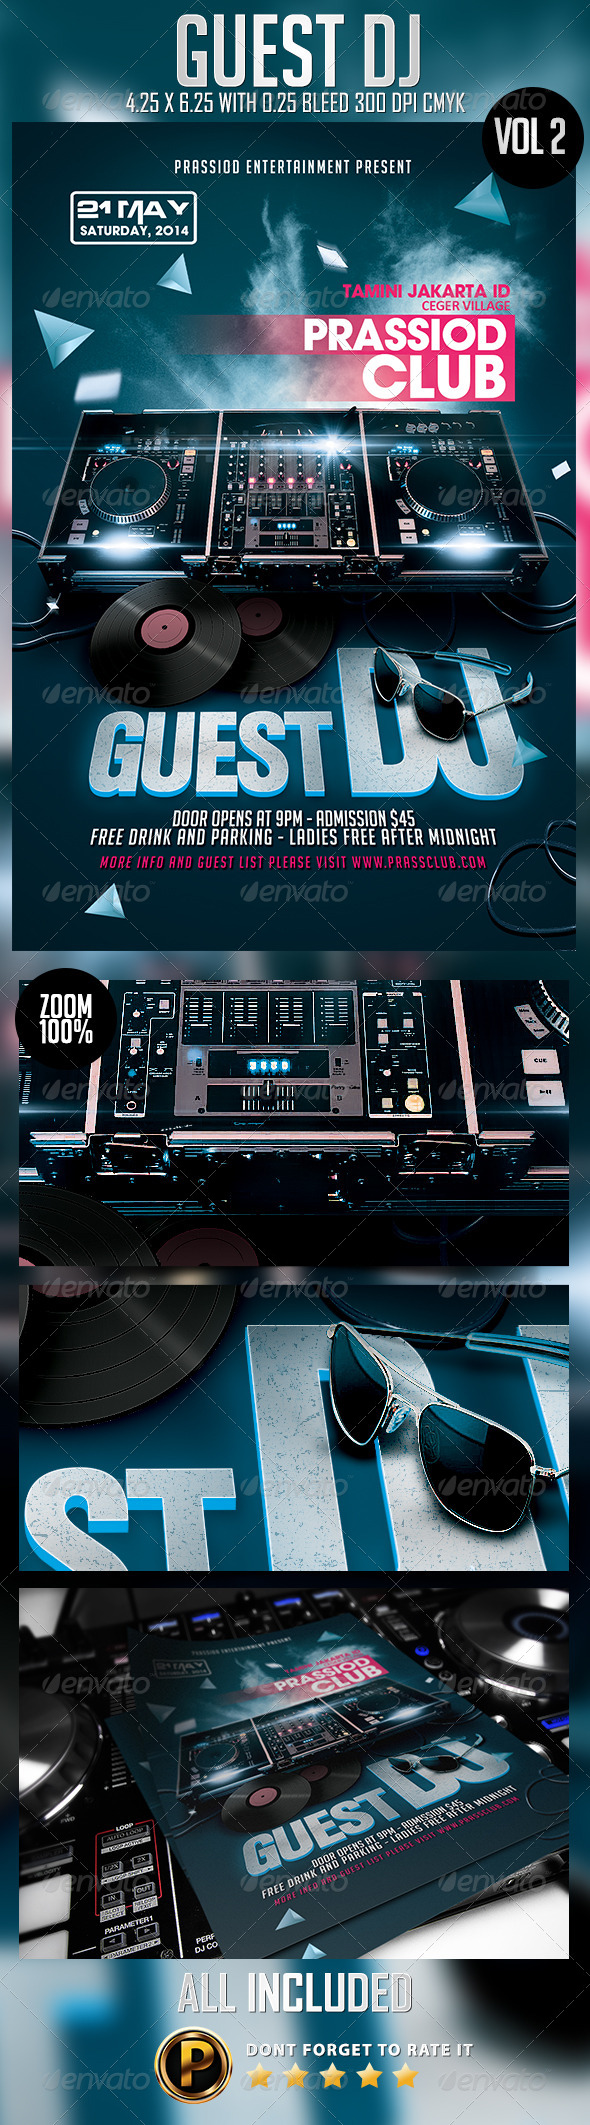 Guest DJ Flyer Template Vol 2 - Clubs & Parties Events